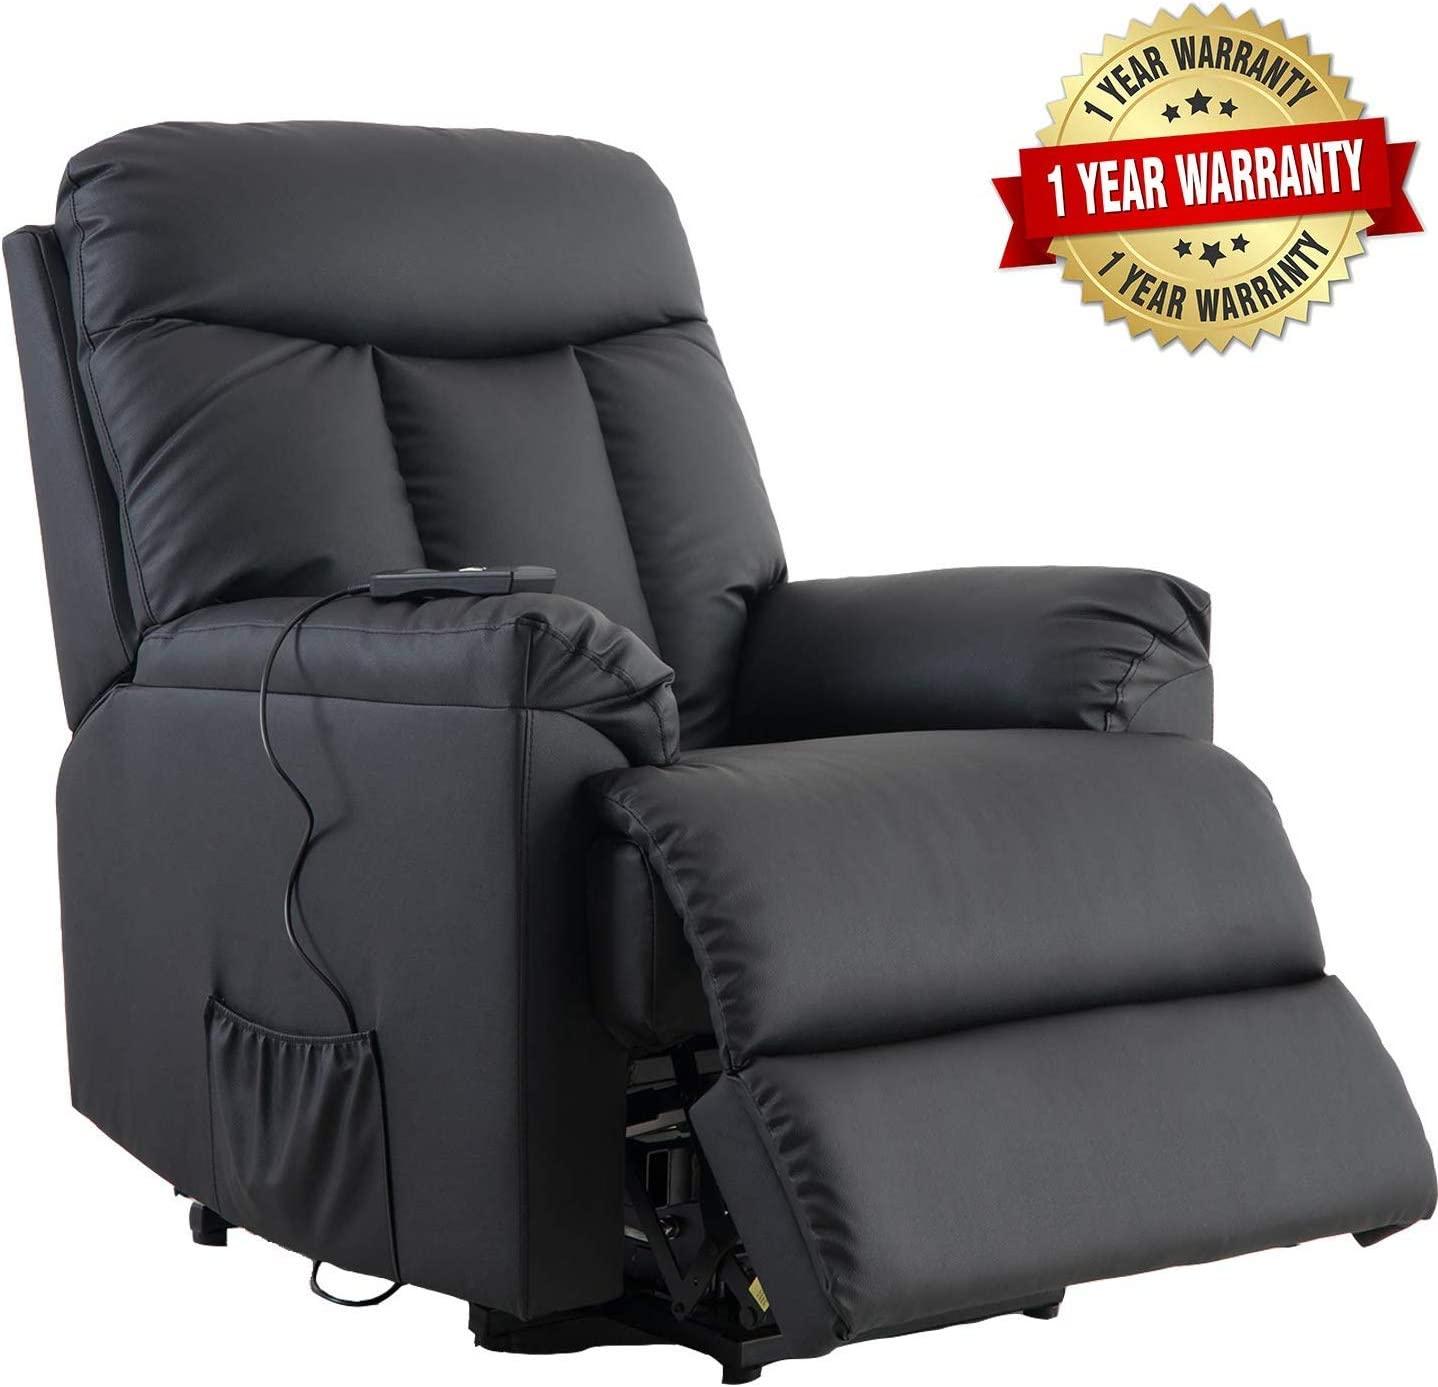 Lift Chairs for Elderly – Lift Chairs Recliners Lift Chairs Electric Recliner Sofa with Remote Control Soft PU Lounge